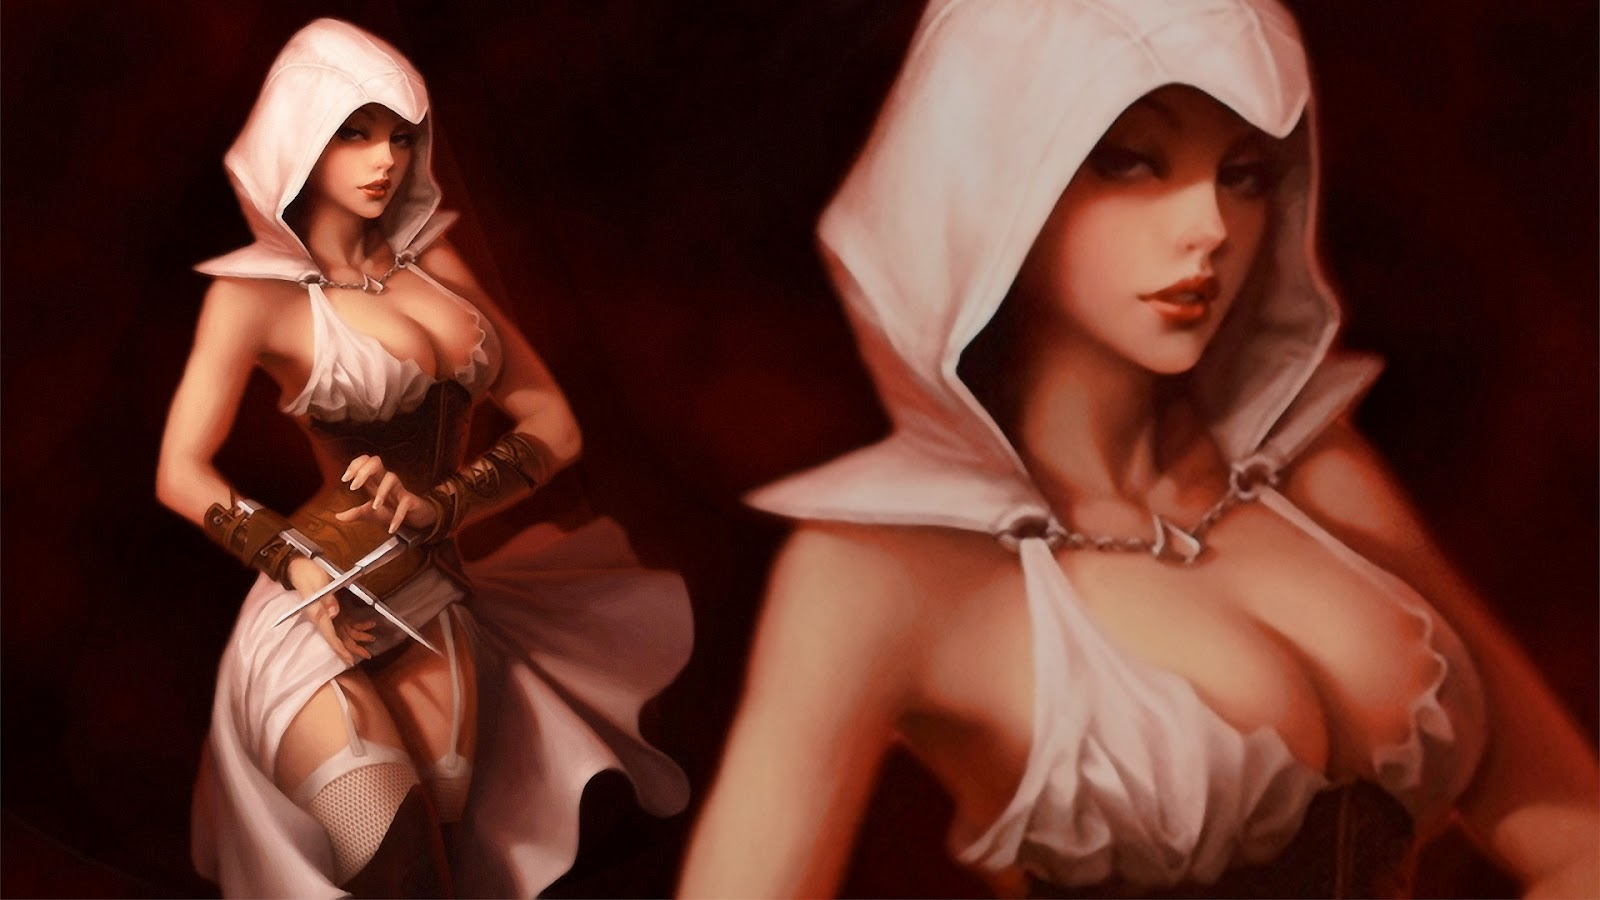 http://4.bp.blogspot.com/-B07JXGNS3Qs/UAOPbrx2jvI/AAAAAAAABBw/QwWFbCH1ArM/s1600/assassins+creed+ac+female+women+girl+wallpaper+background+hot+sexy+ubisoft+action.jpg